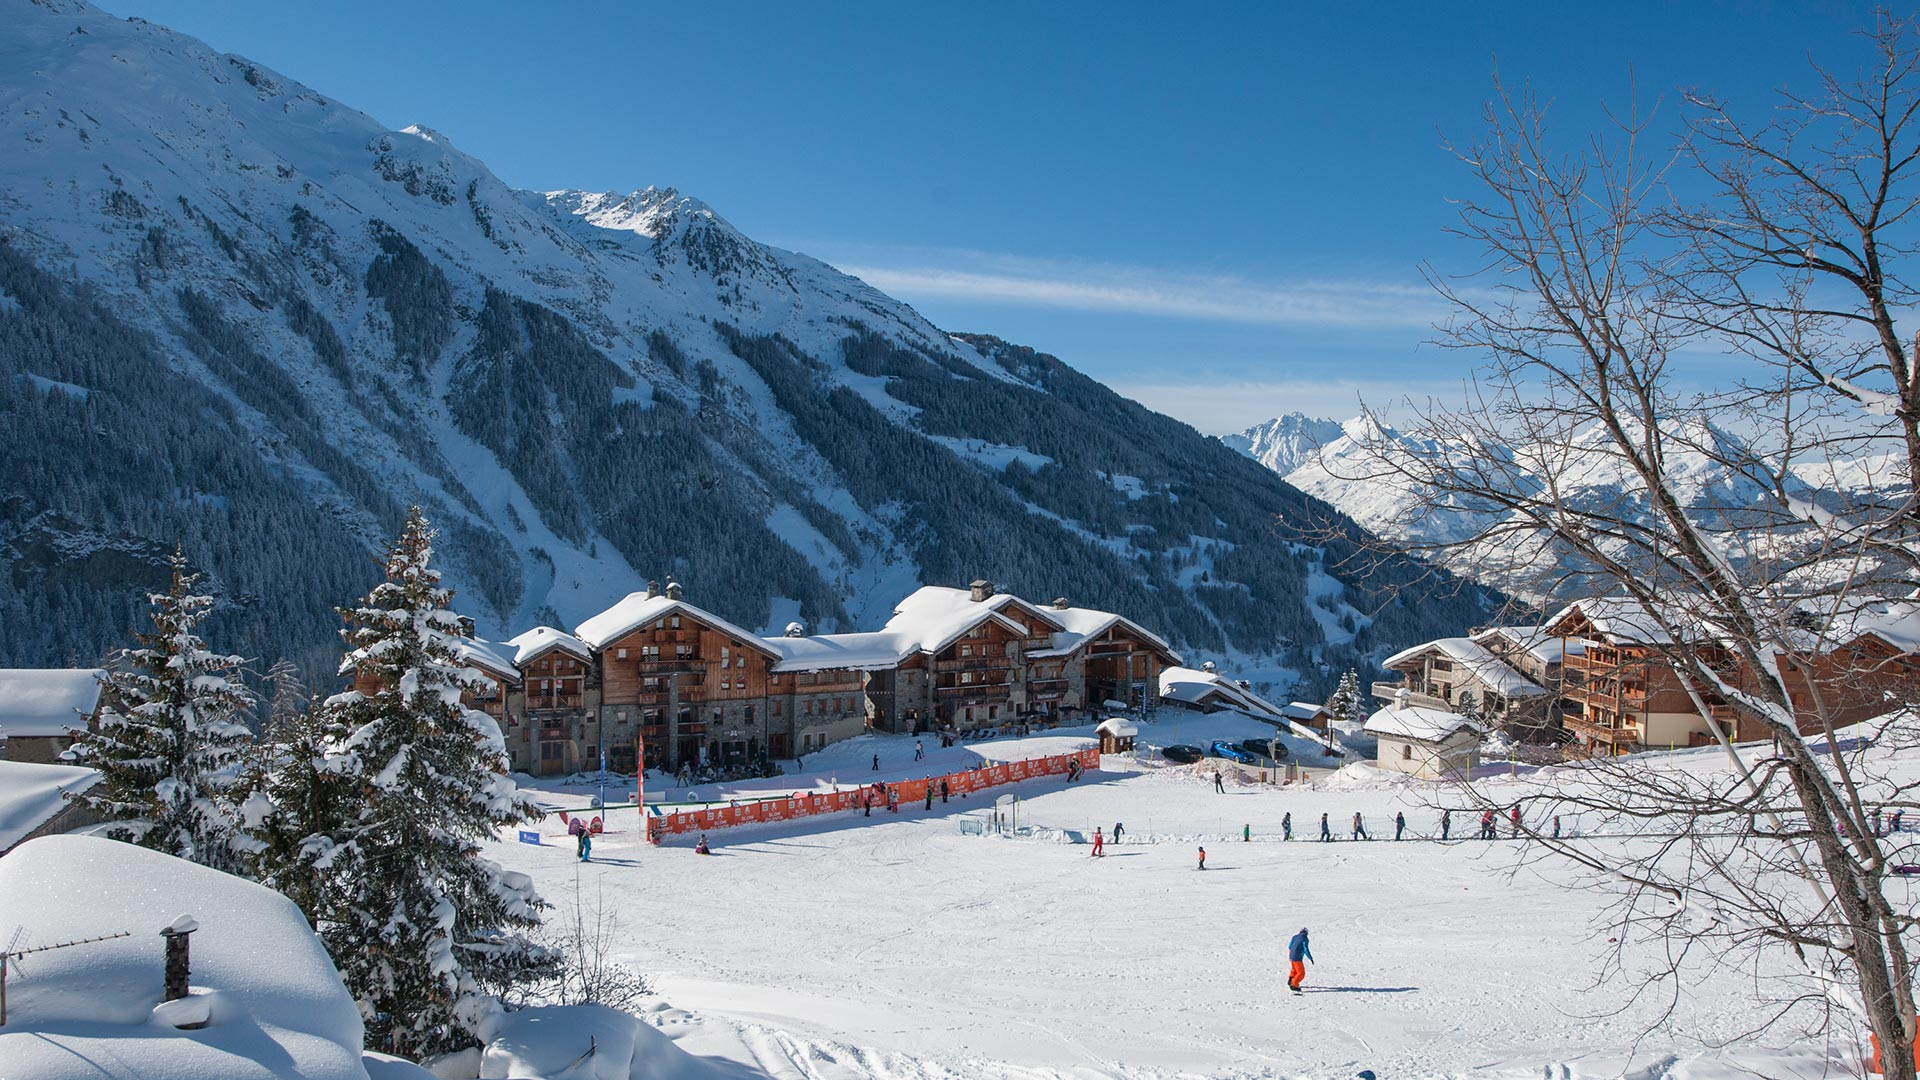 Views from the lower slopes of Sainte Foy